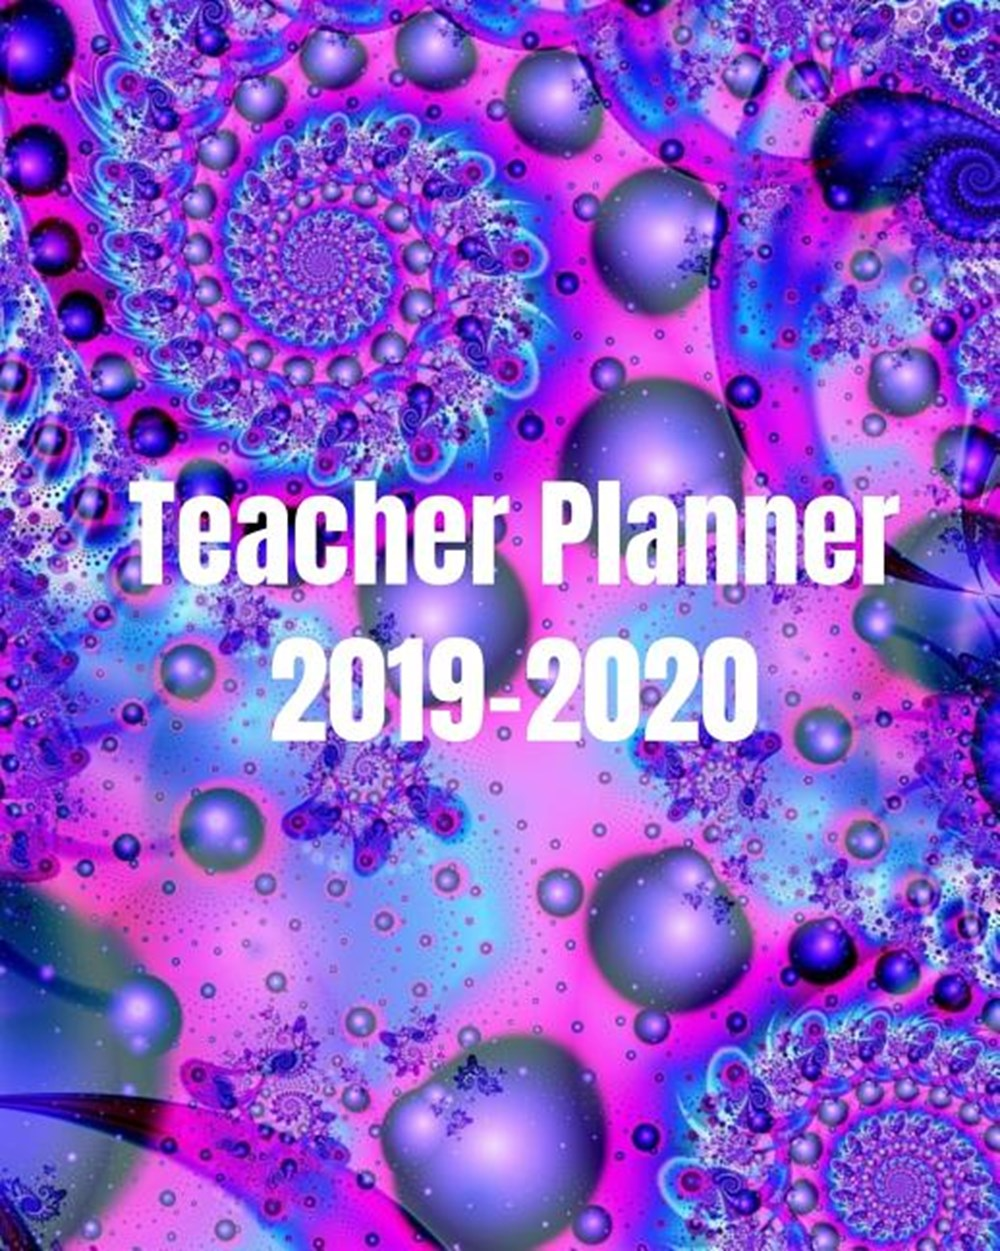 Teacher Planner 2019 - 2020 Cute Classroom Organizer For Teachers